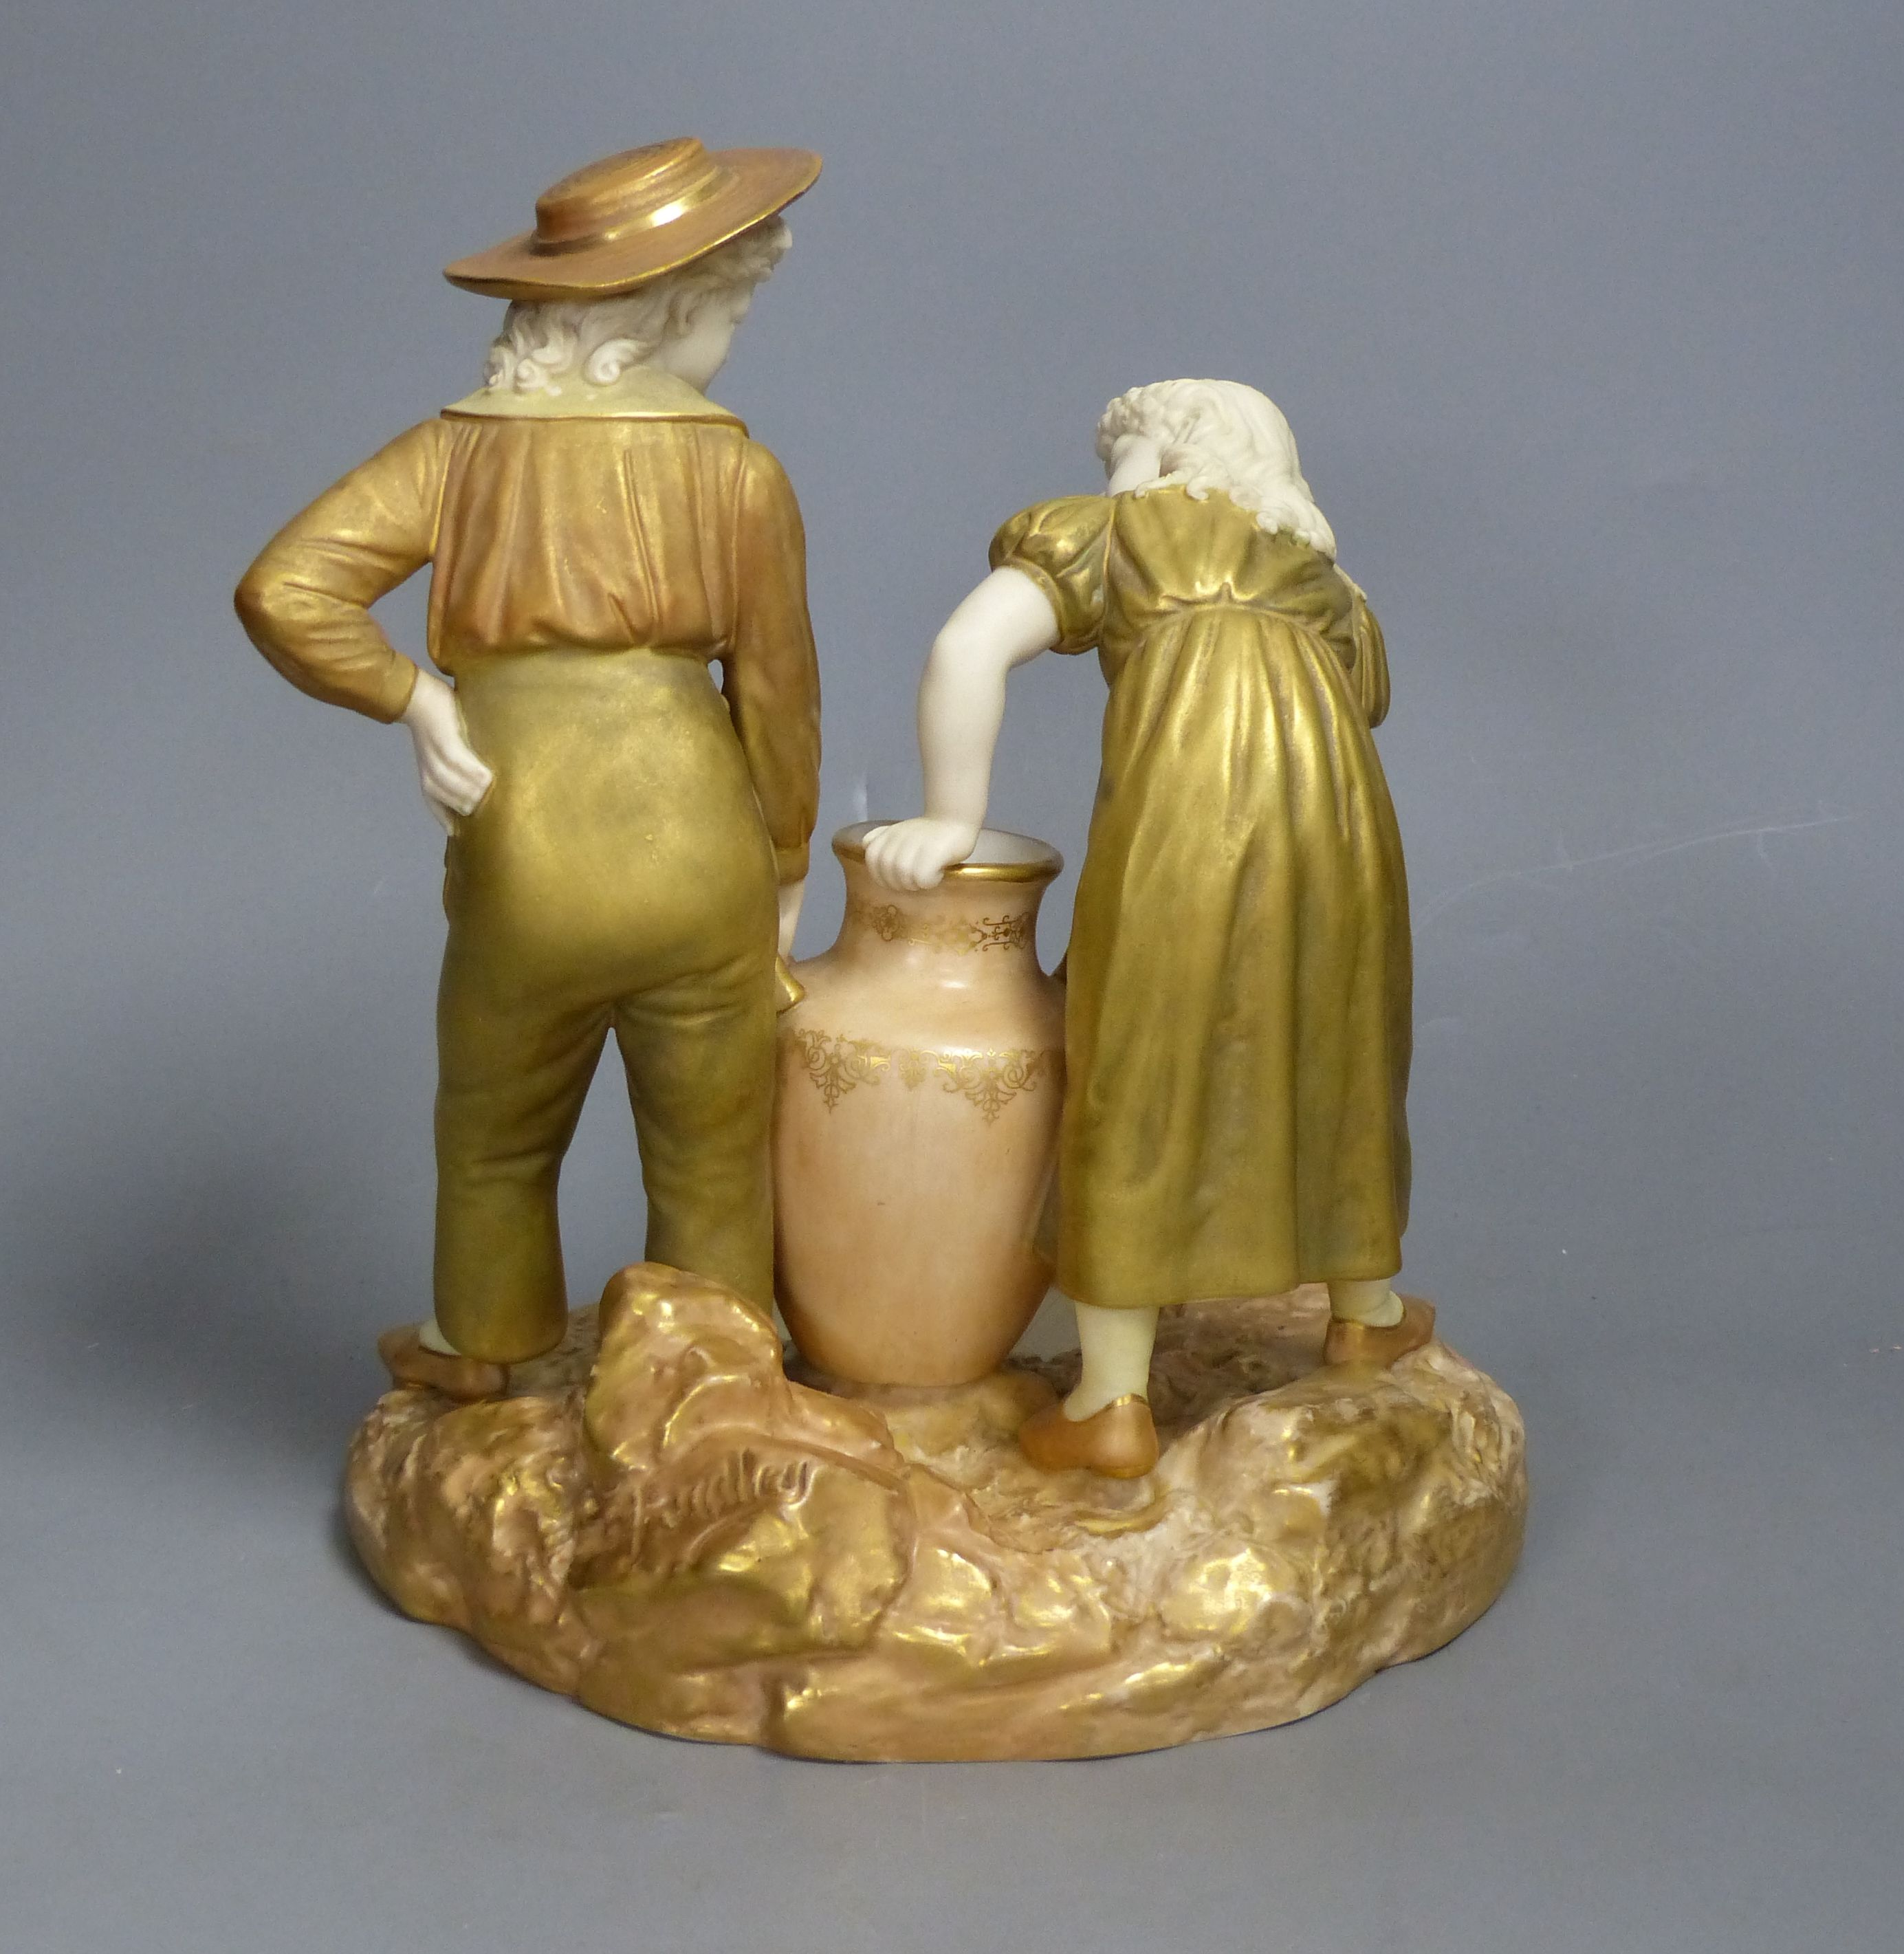 A Royal Worcester group of a boy and a girl, date code for 1917, height 24cm - Image 2 of 4